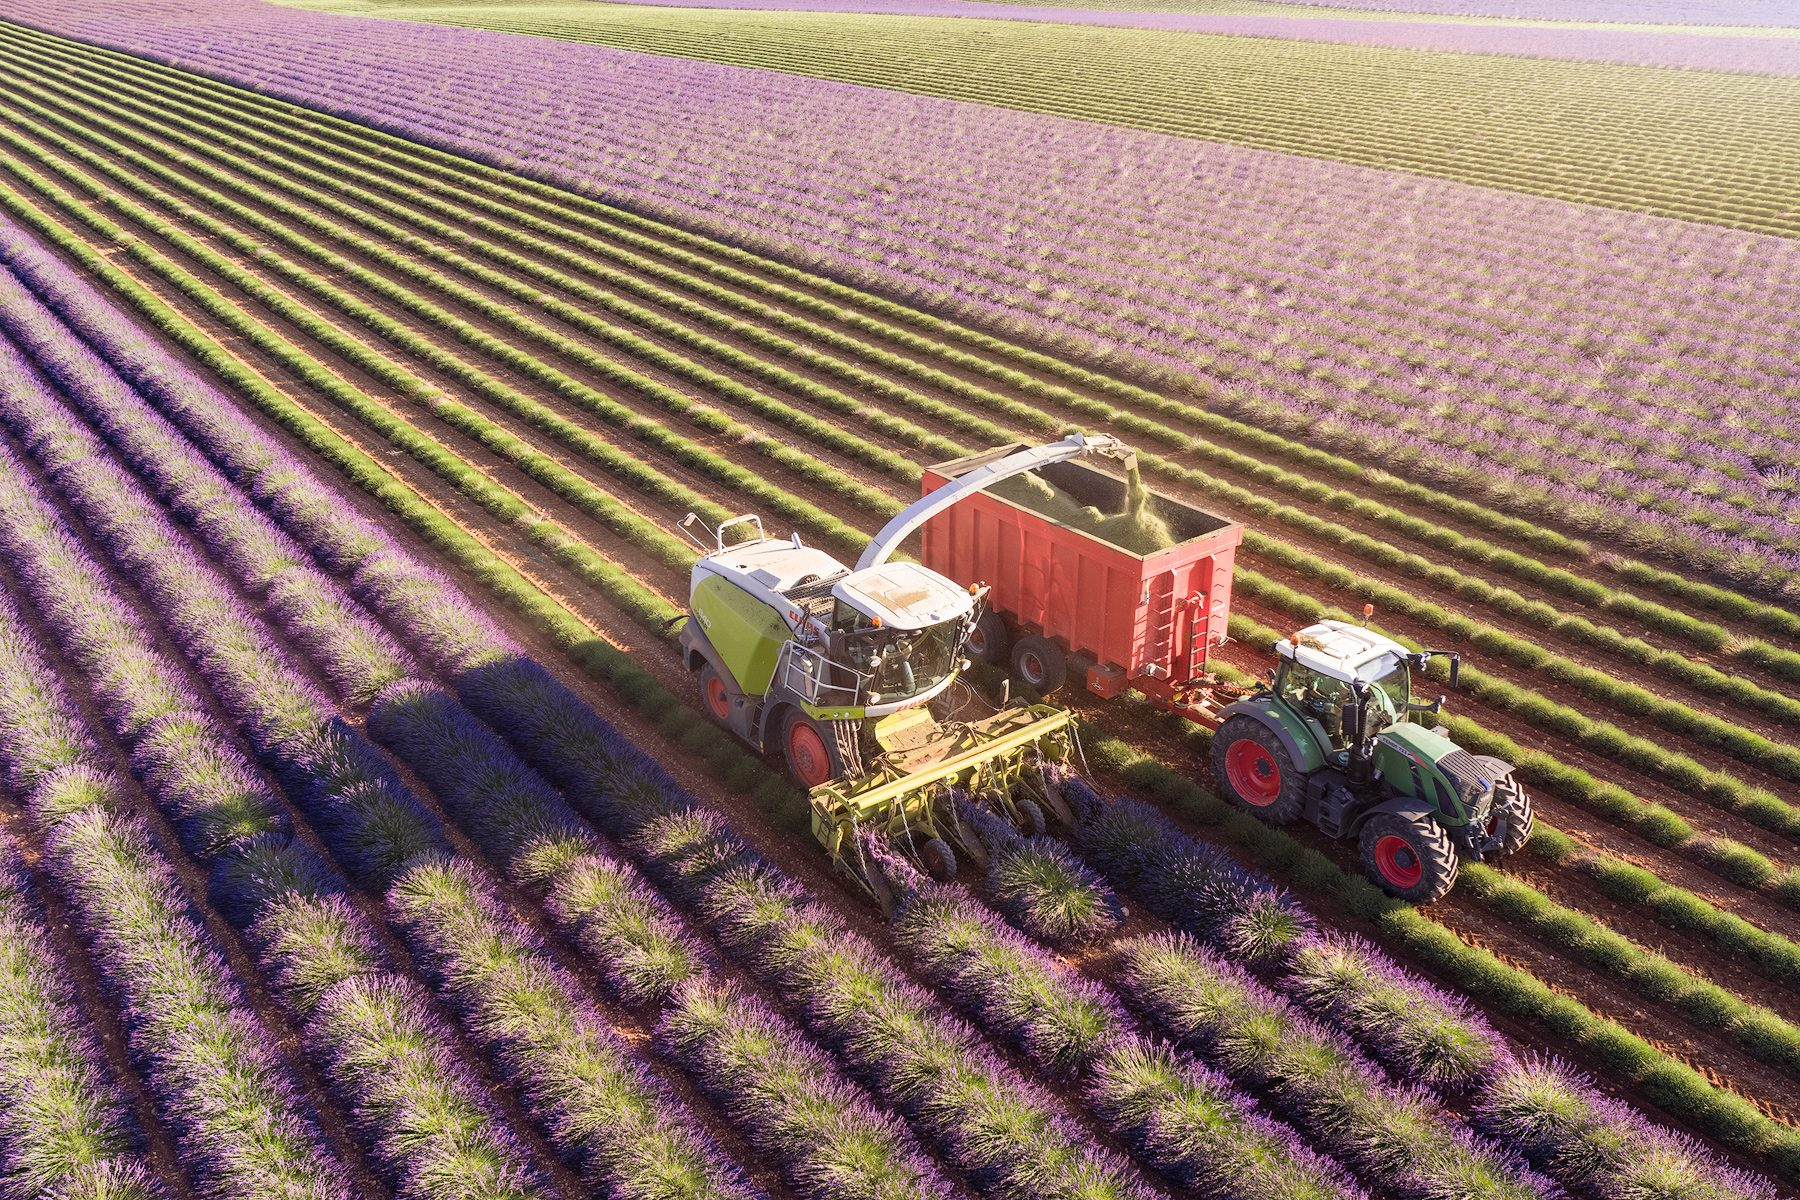 Lavender harvest at Valensole, Provence, France / aerial photograph